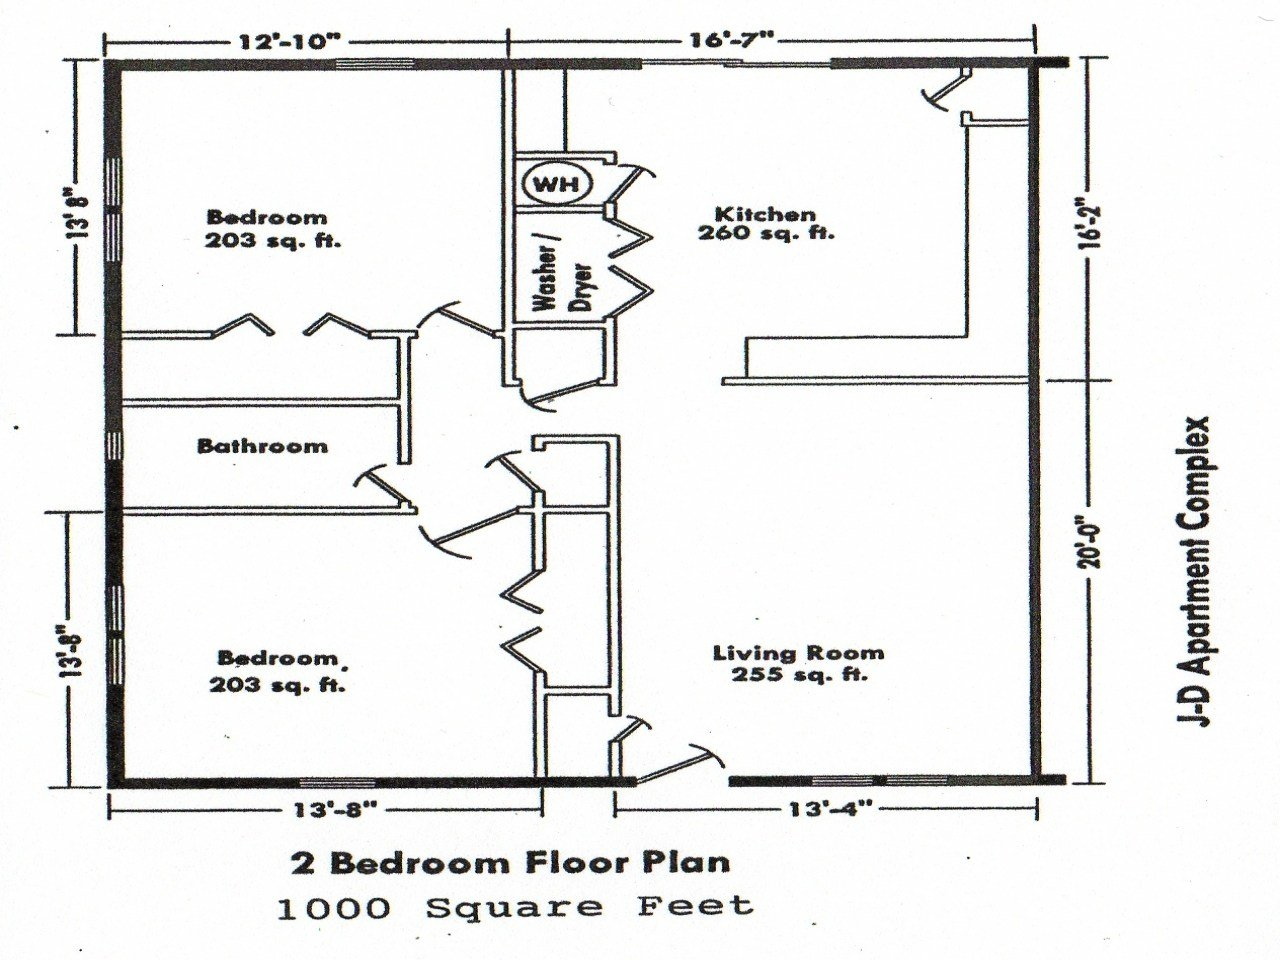 Best 2 Bedroom House Floor Plans 2 Bedroom House Simple Plan With Pictures